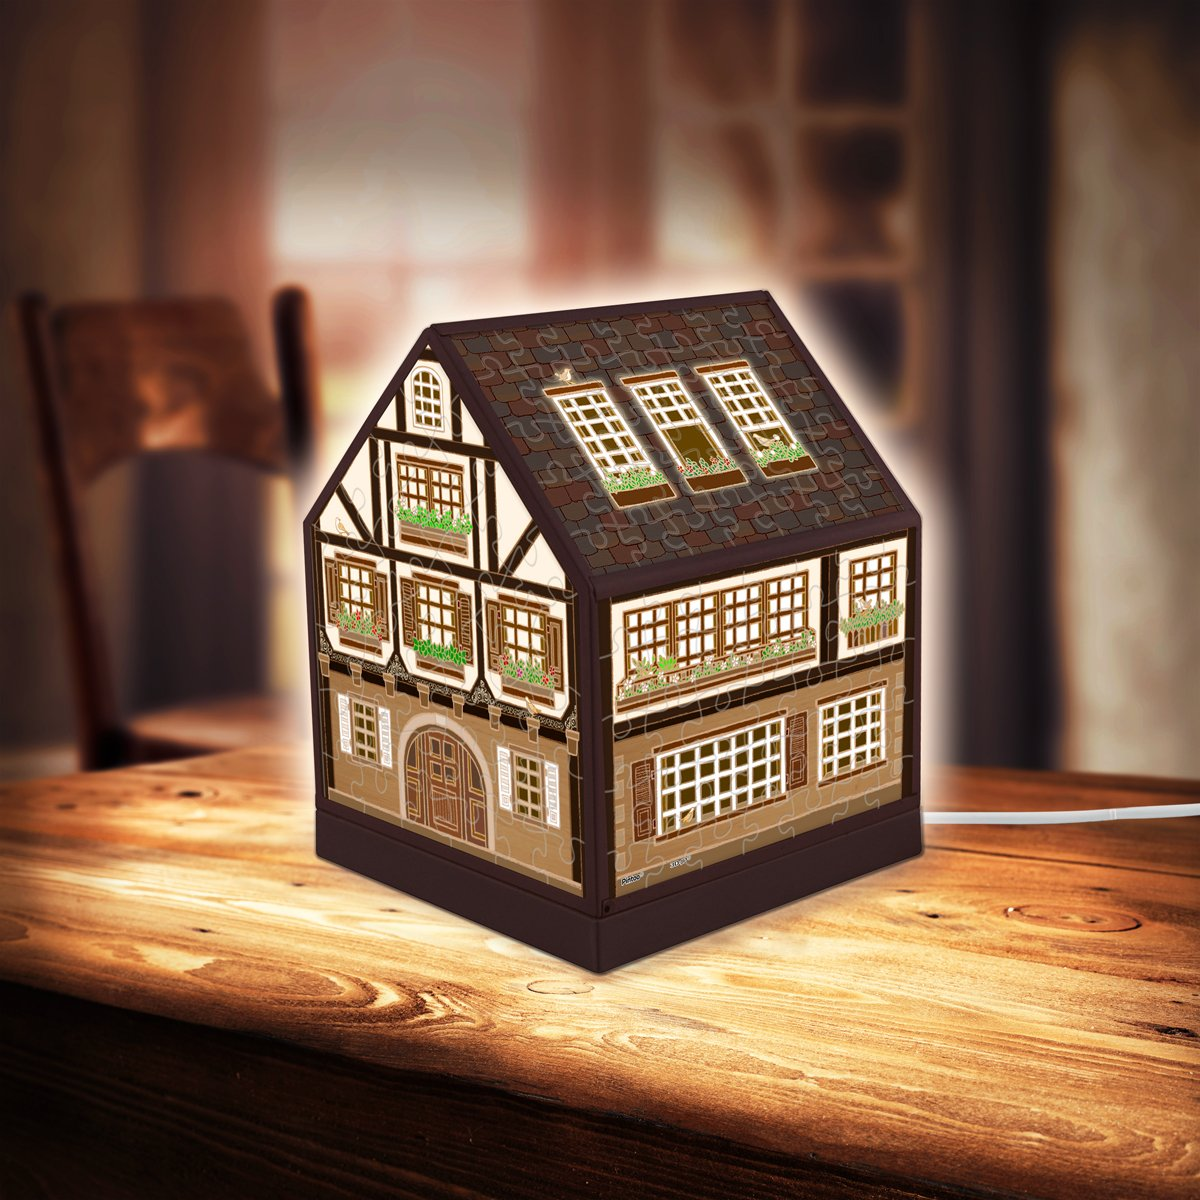 pintoo-3d-puzzle-house-lantern-half-timbered-house-208-teile-puzzle-pintoo-r1006